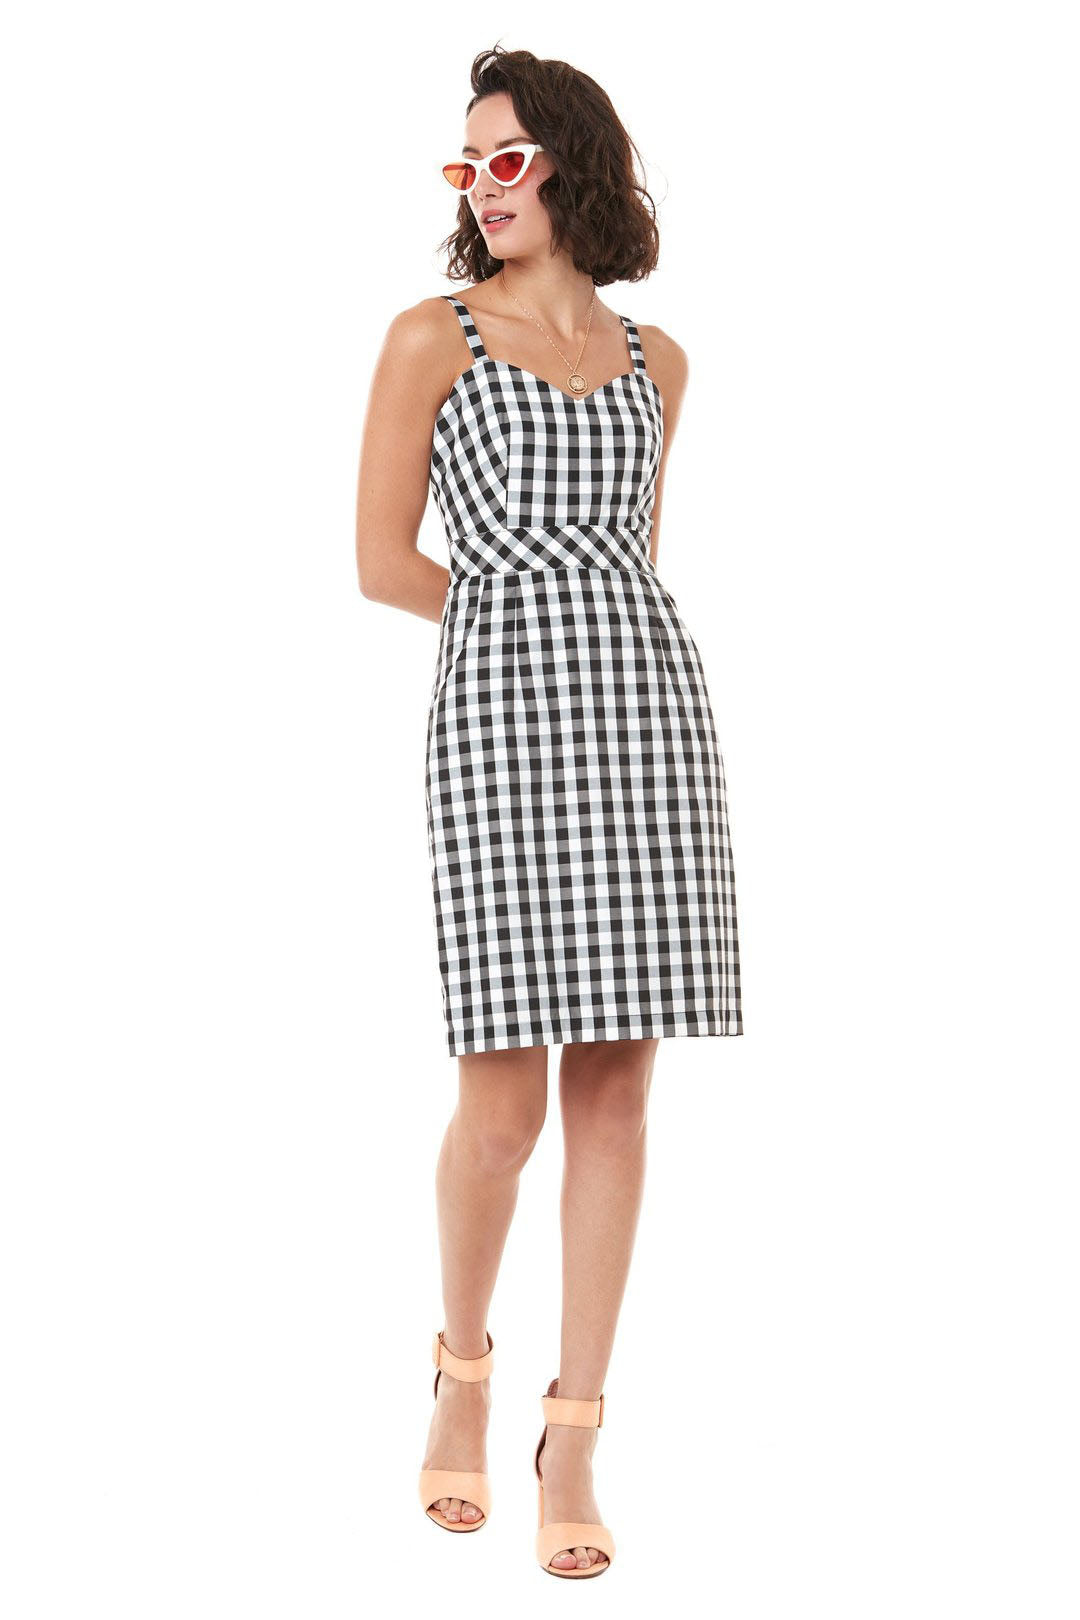 French 75 Dress Annie 50 Vichy Front